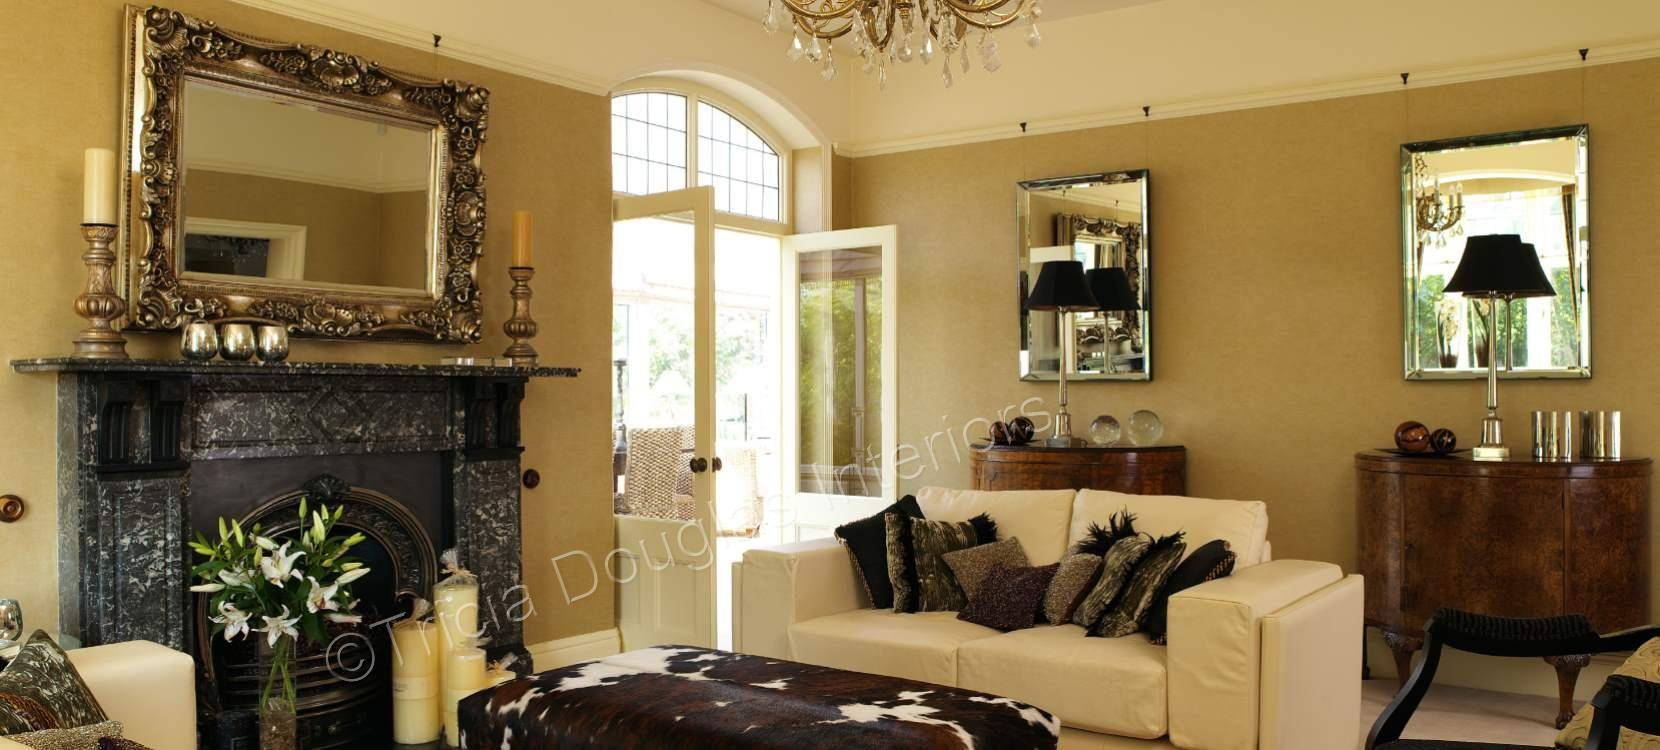 Interior Design Harrogate York Leeds Leading Designer